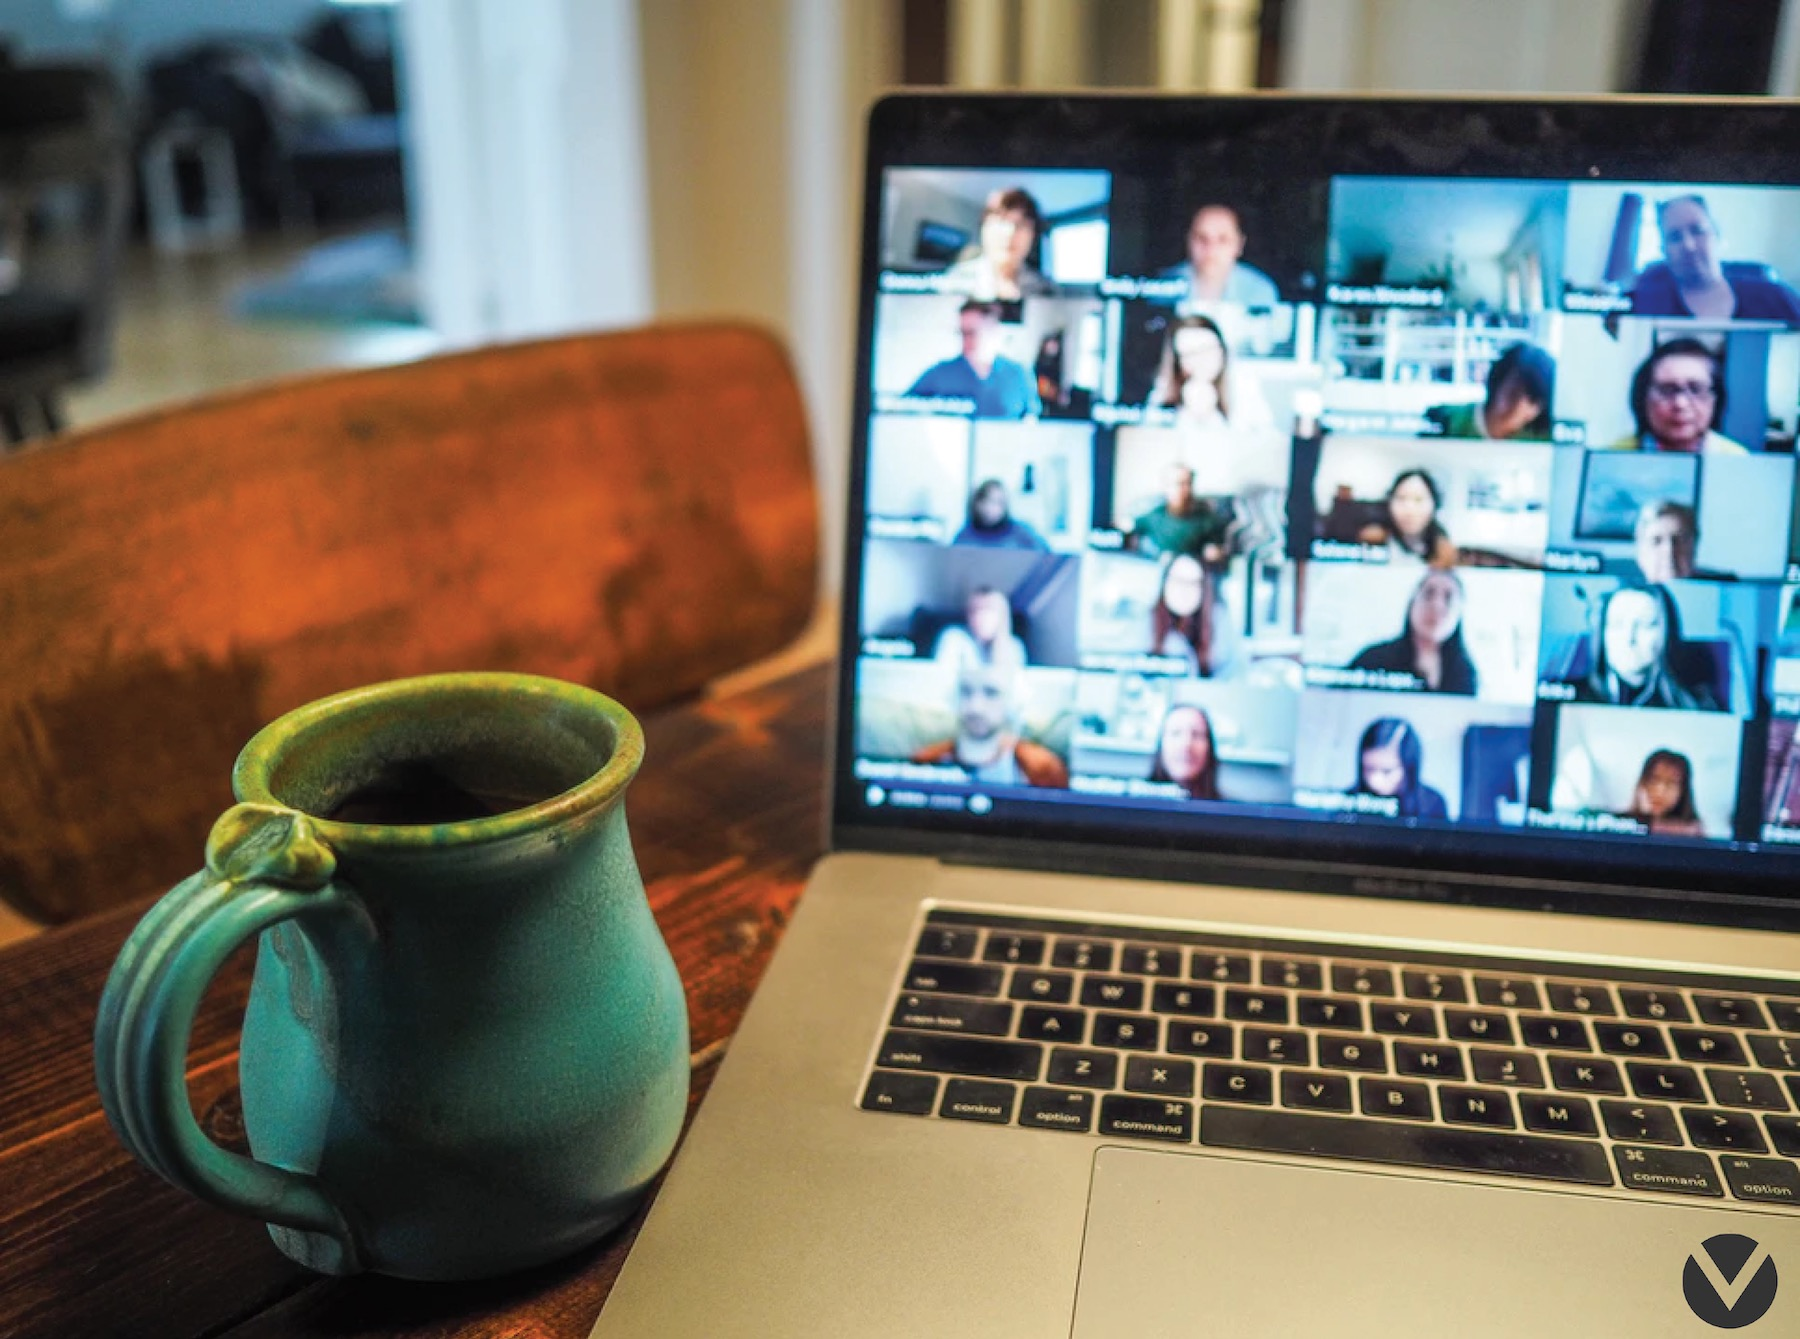 laptop with a mug next to it on a zoom call